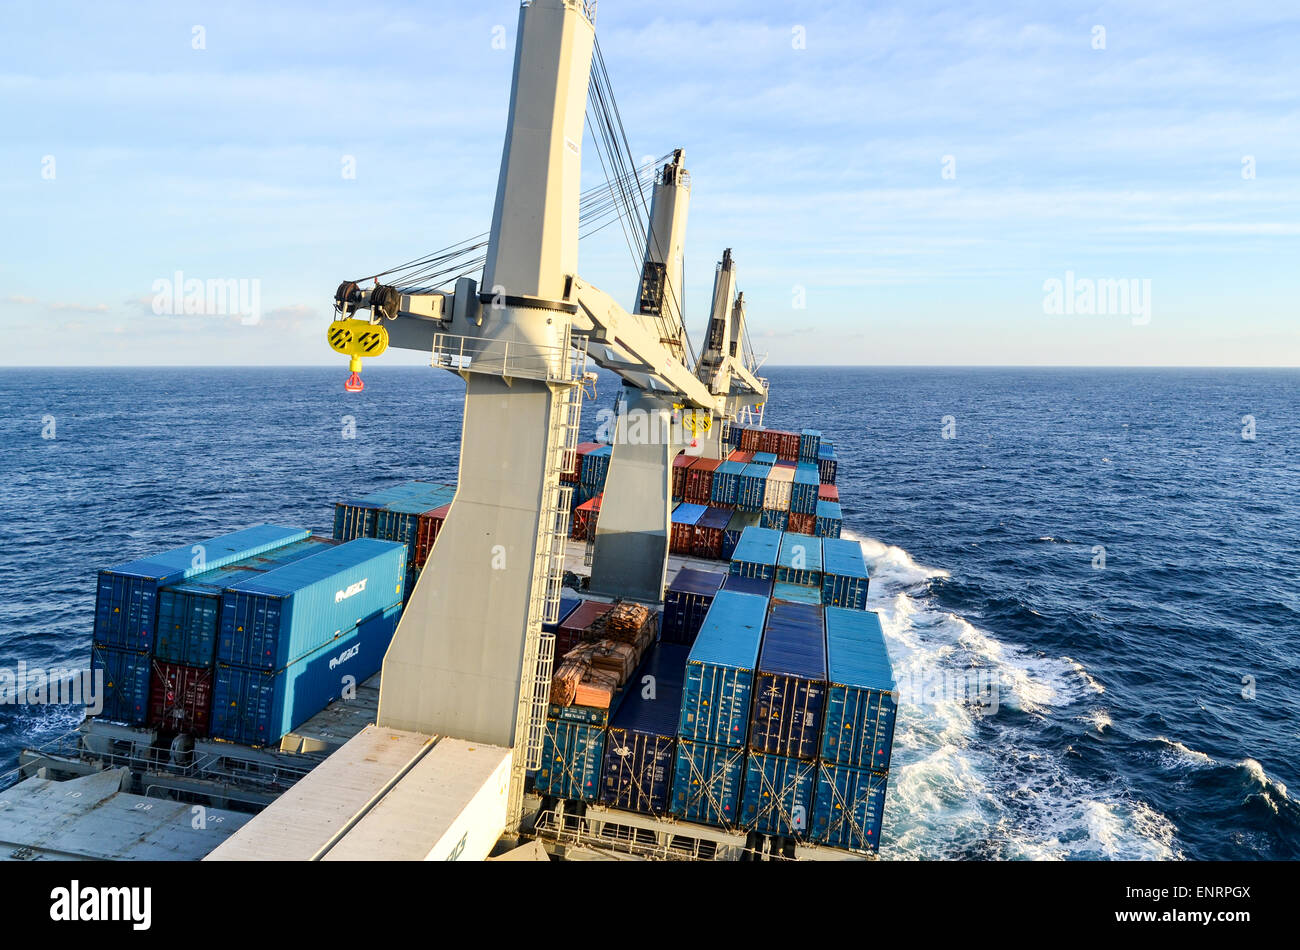 Ship carrying containers rolling in the open seas of the Atlantic ocean - Stock Image